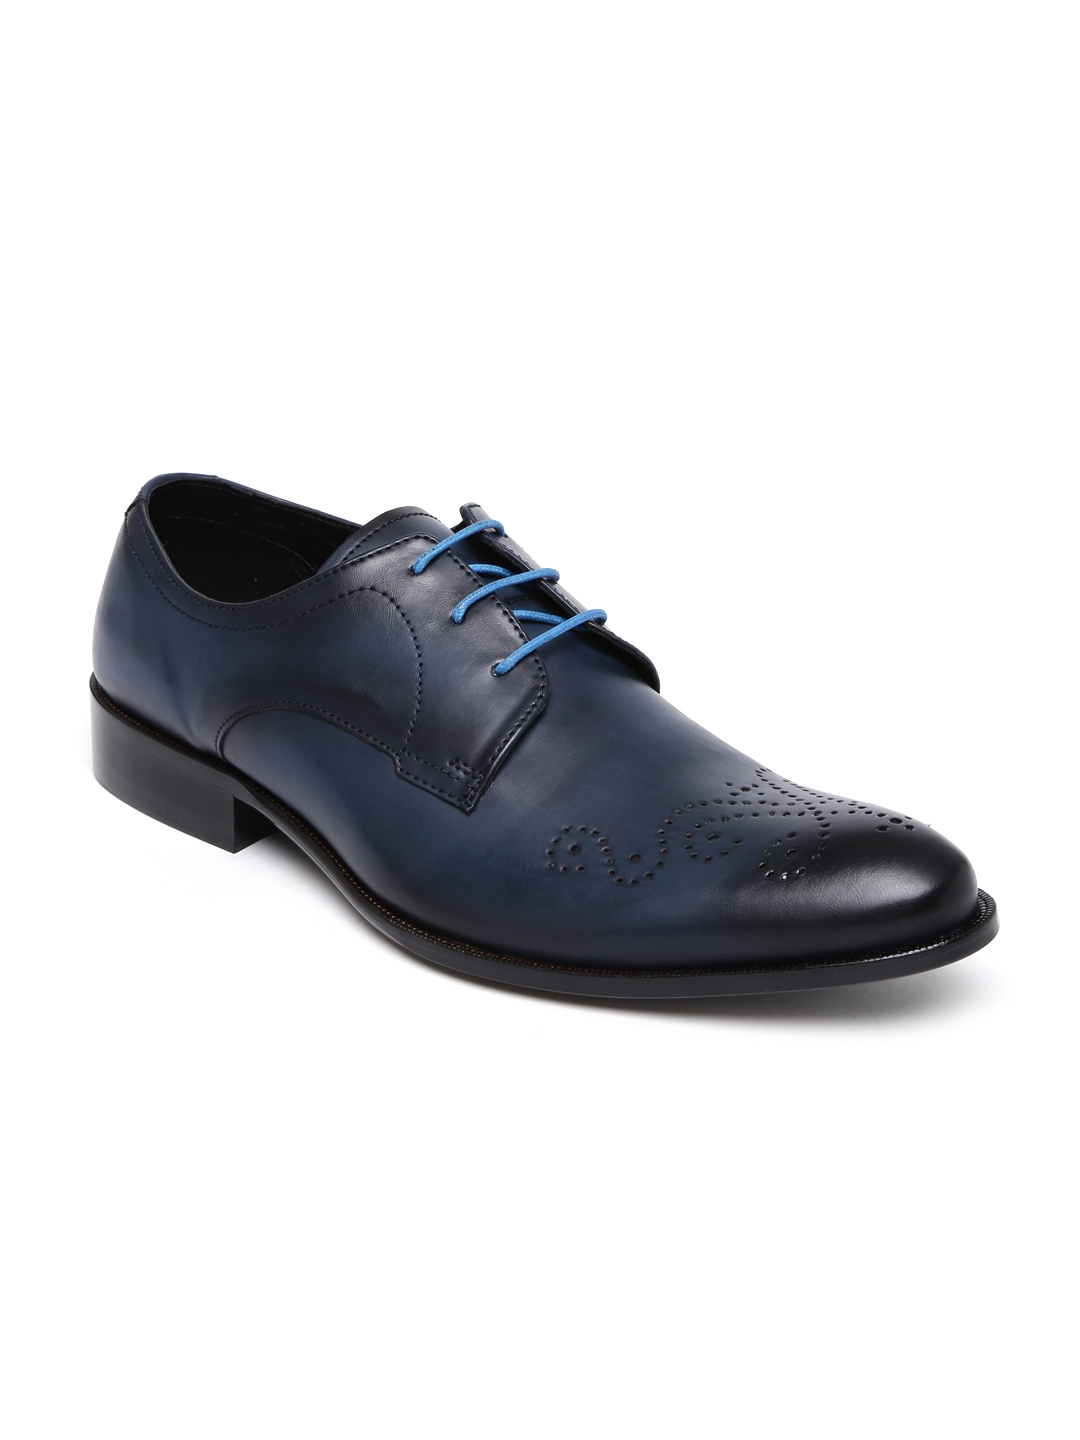 franco navy leather brogues price myntra formal